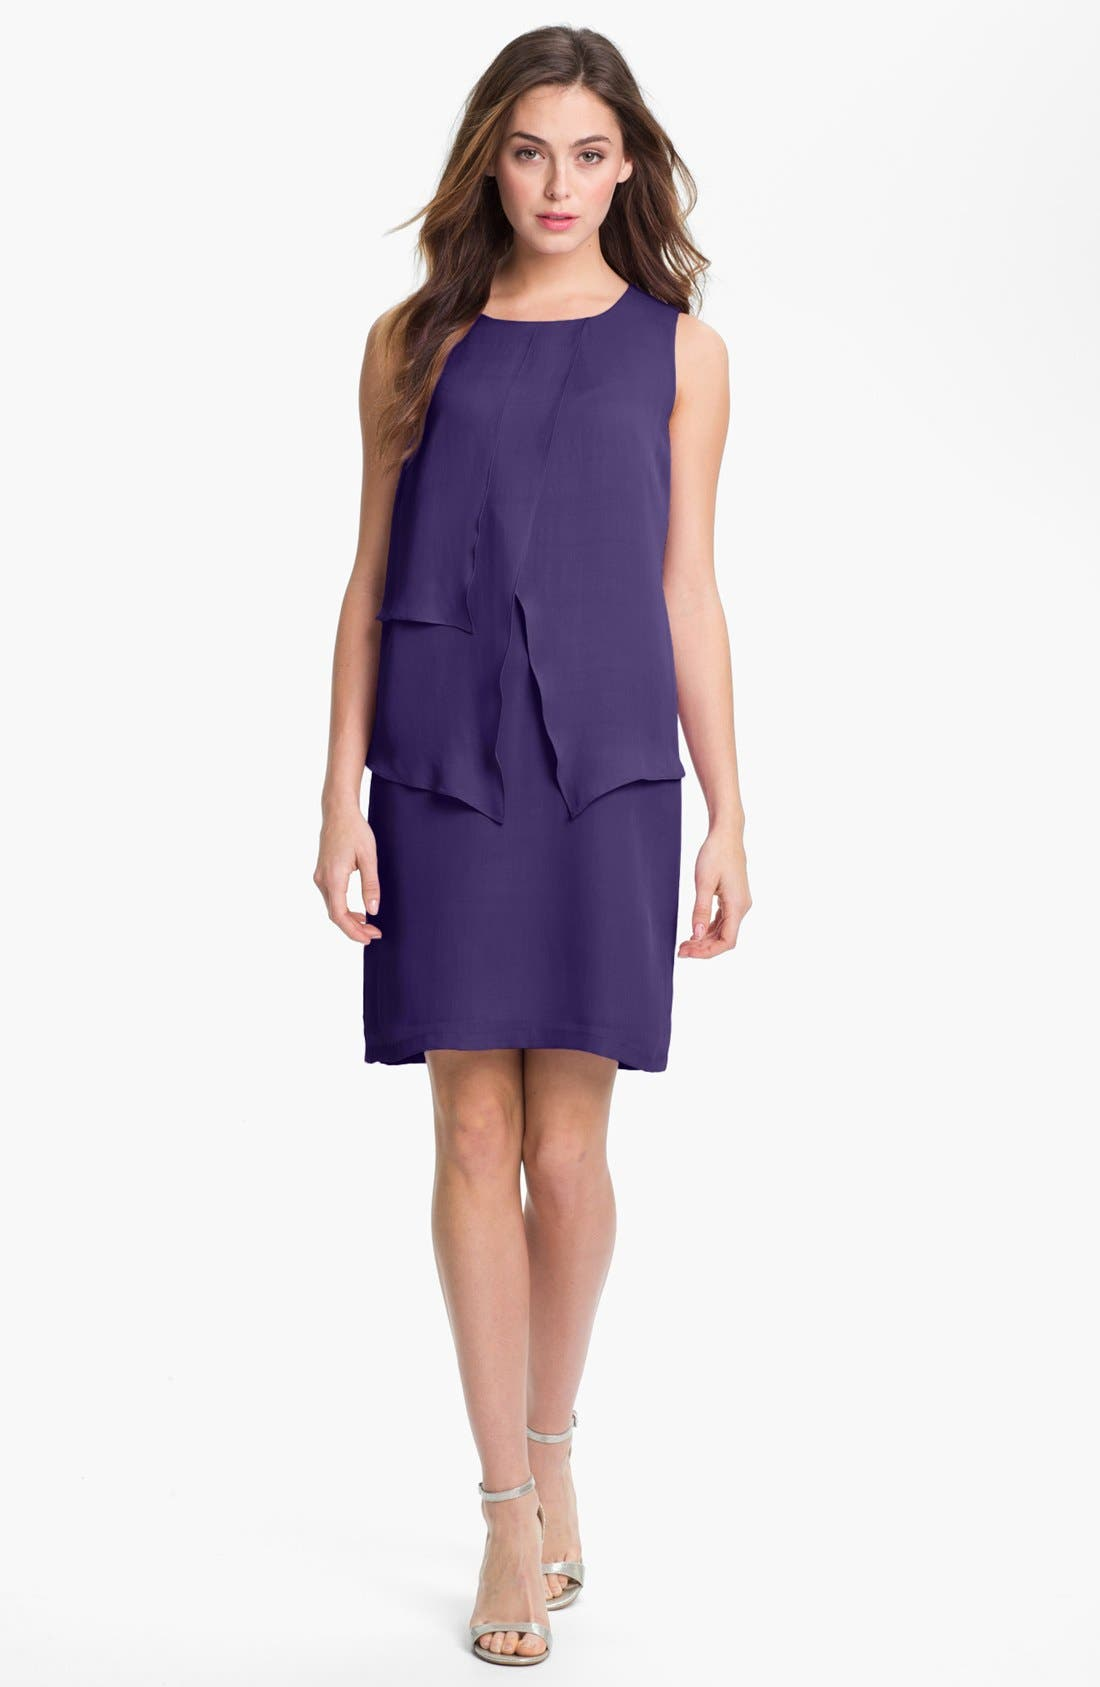 Alternate Image 1 Selected - Suzi Chin for Maggy Boutique Tiered Silk Sheath Dress